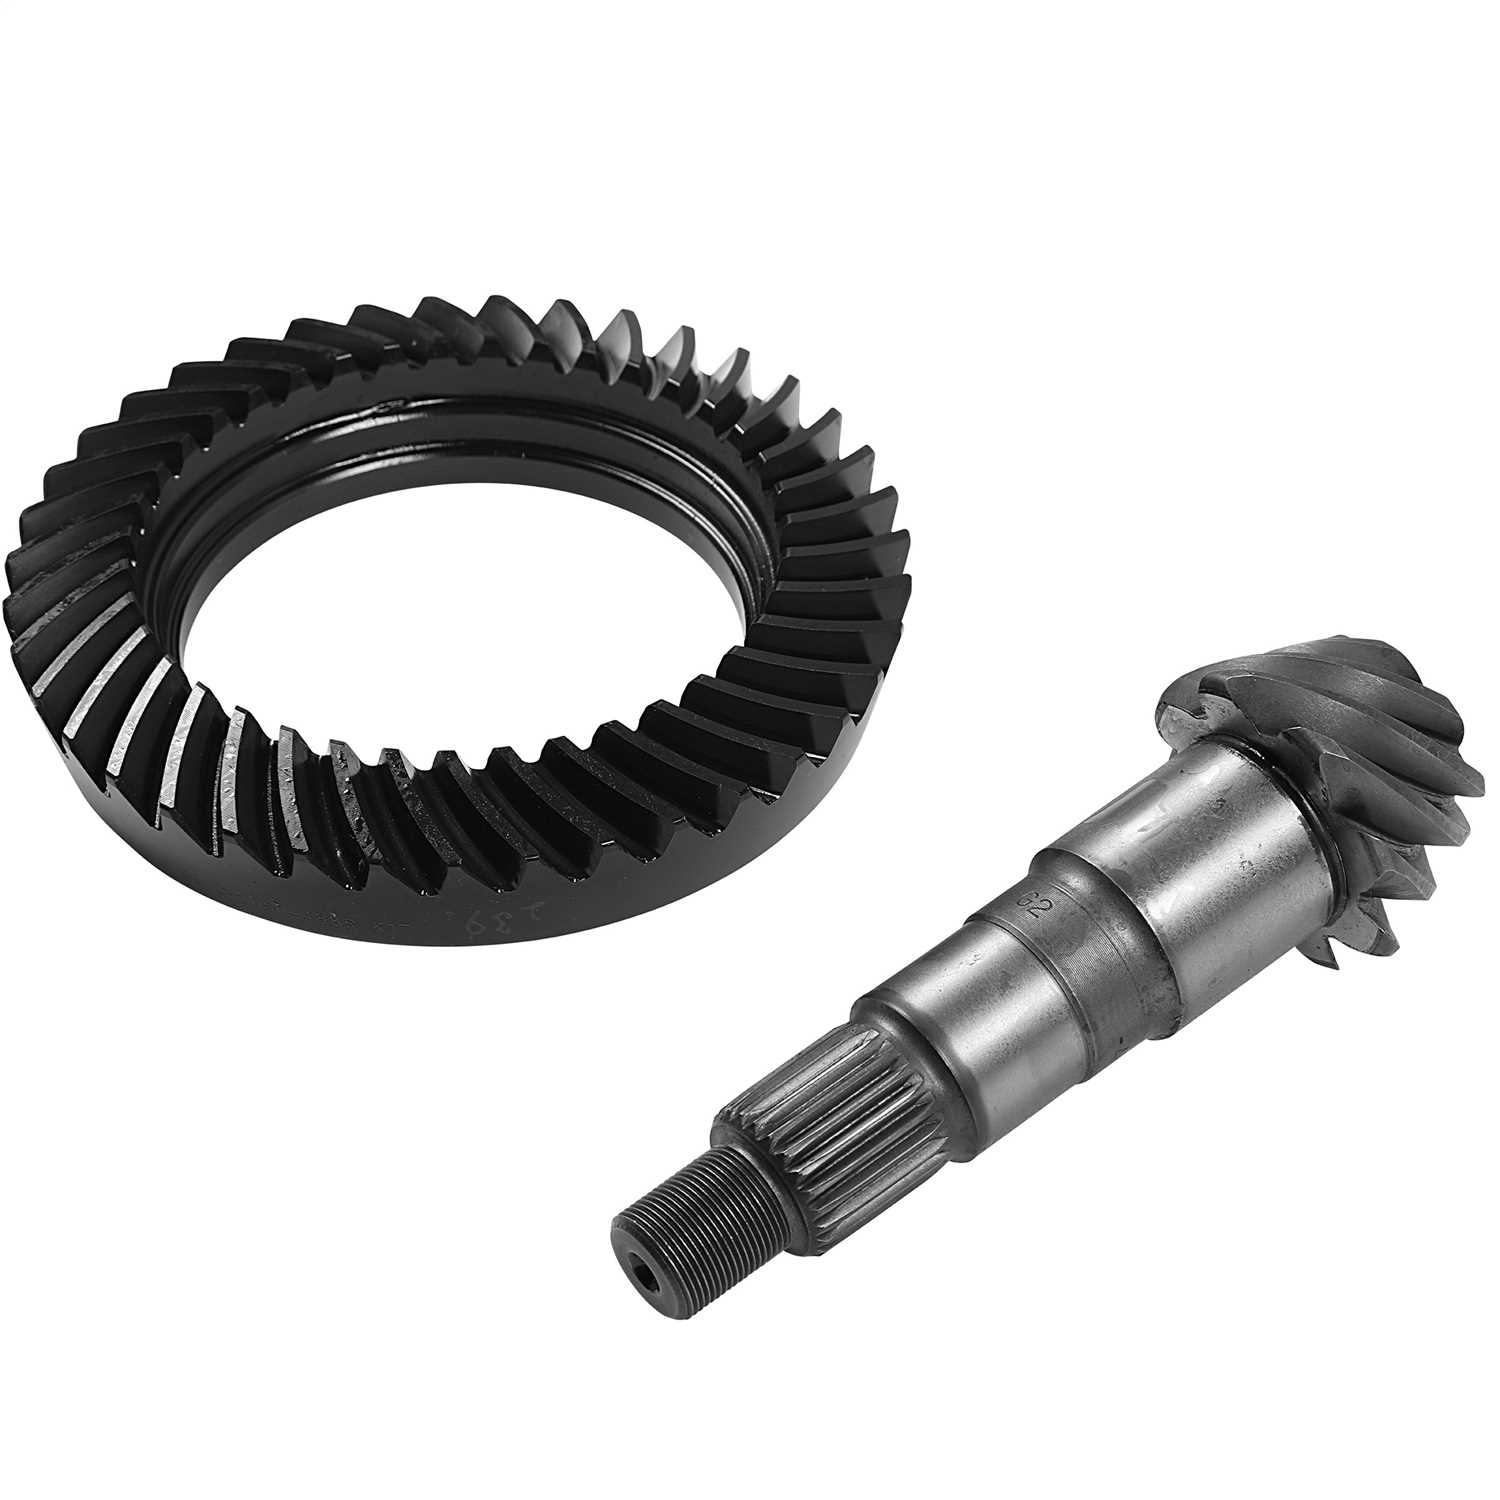 1-2050-488R G2 Axle and Gear Ring and Pinion Set